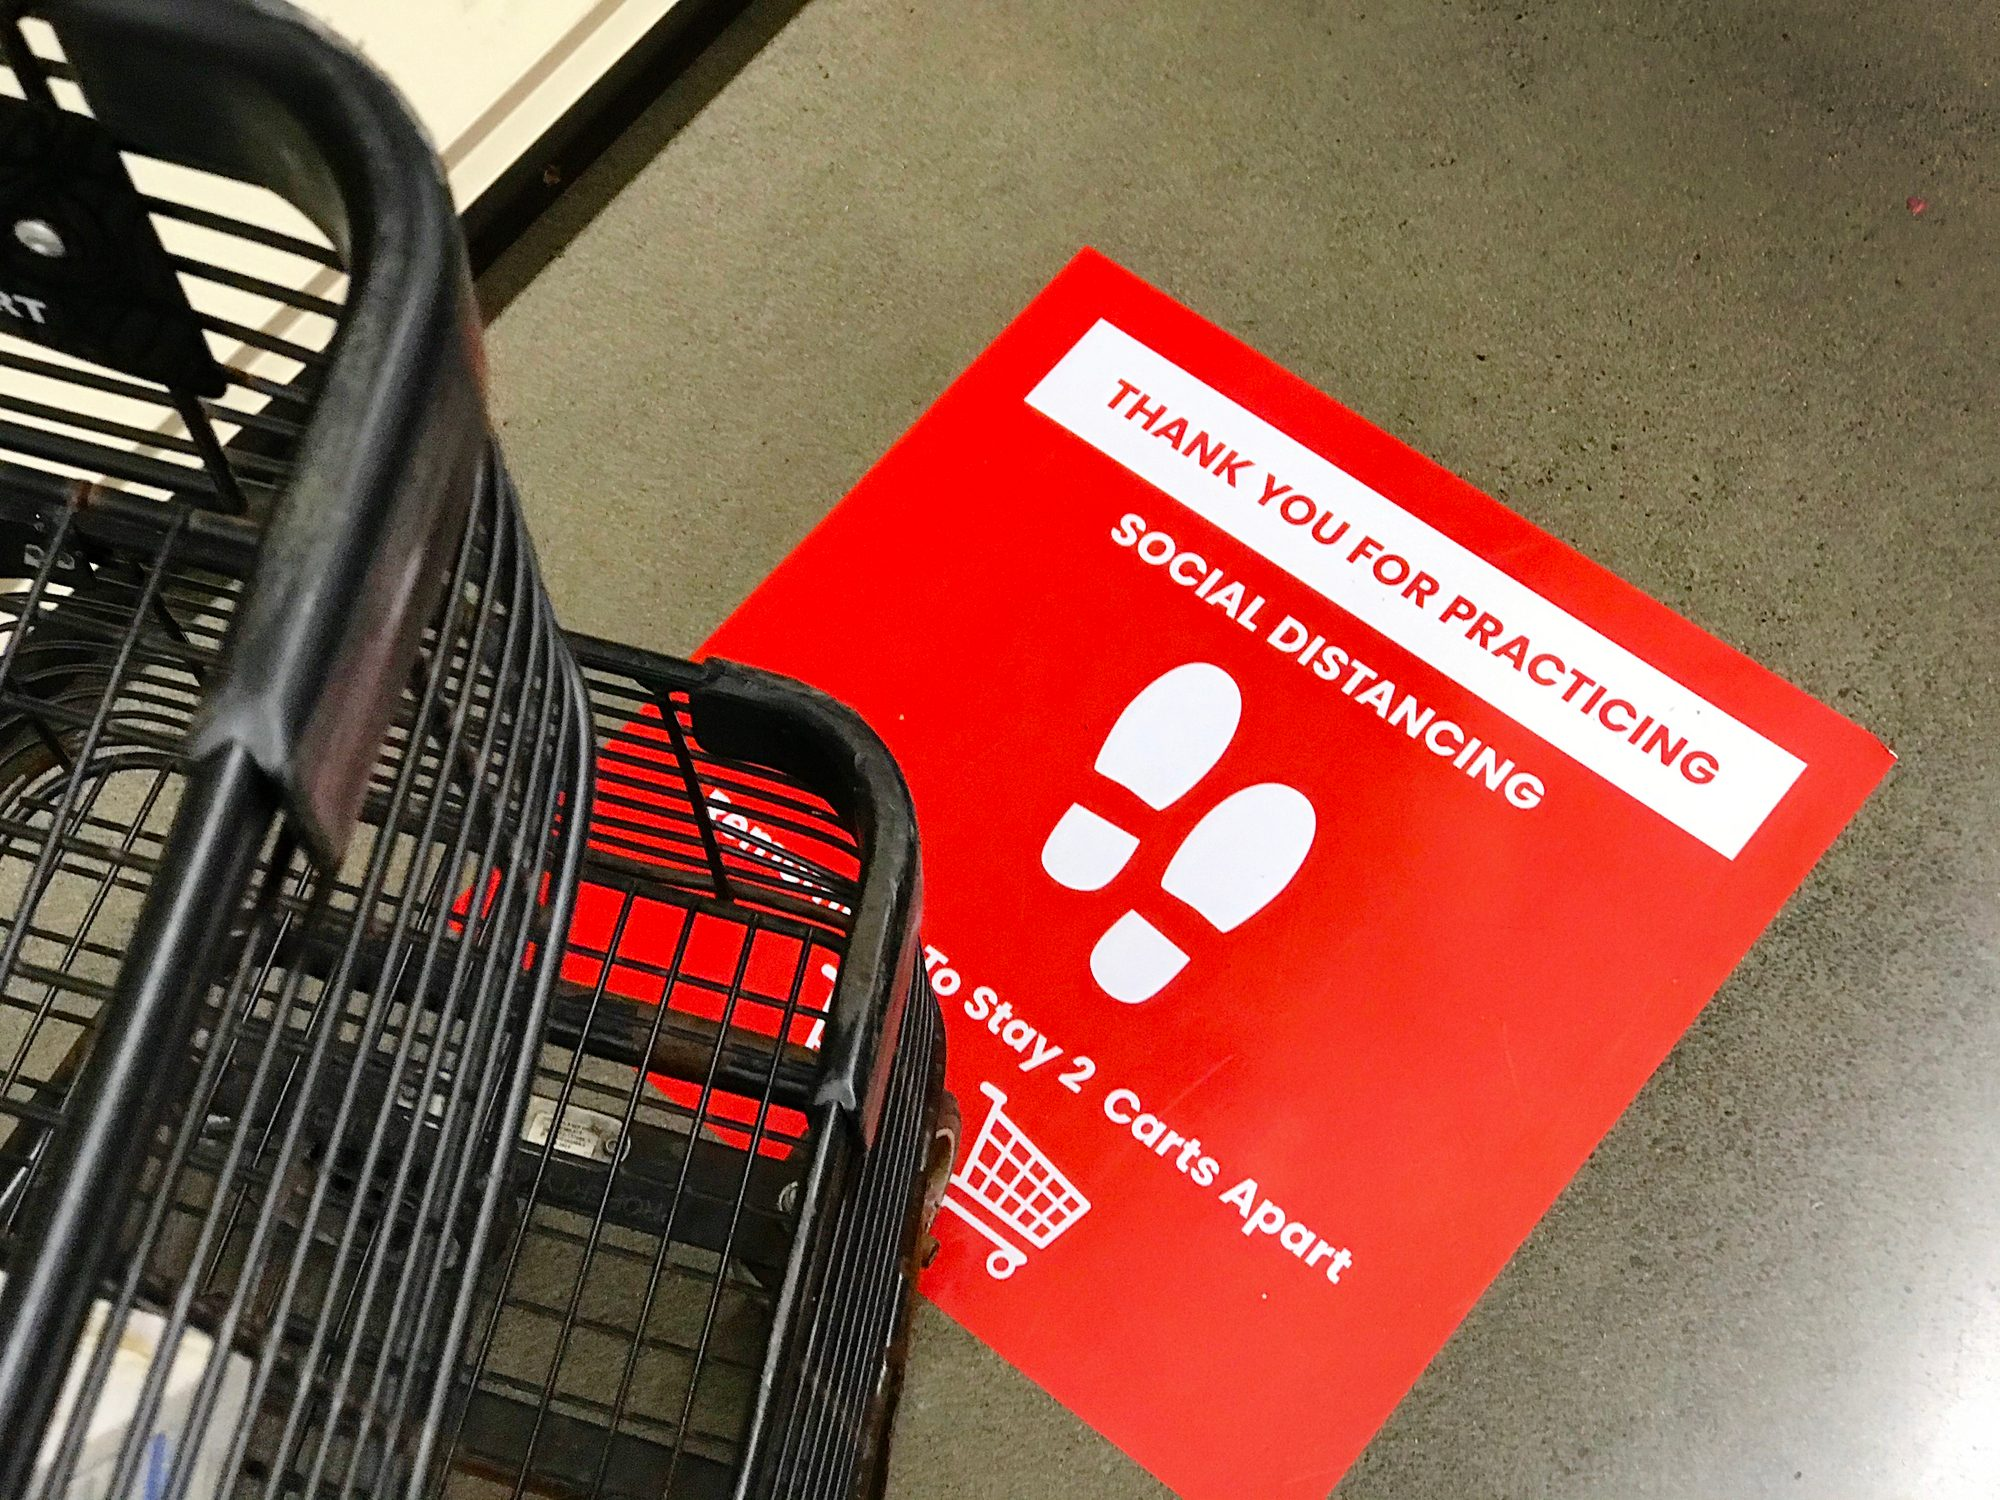 COVID-19 Grocery Store Checkout Line Social Distancing Sign Notice